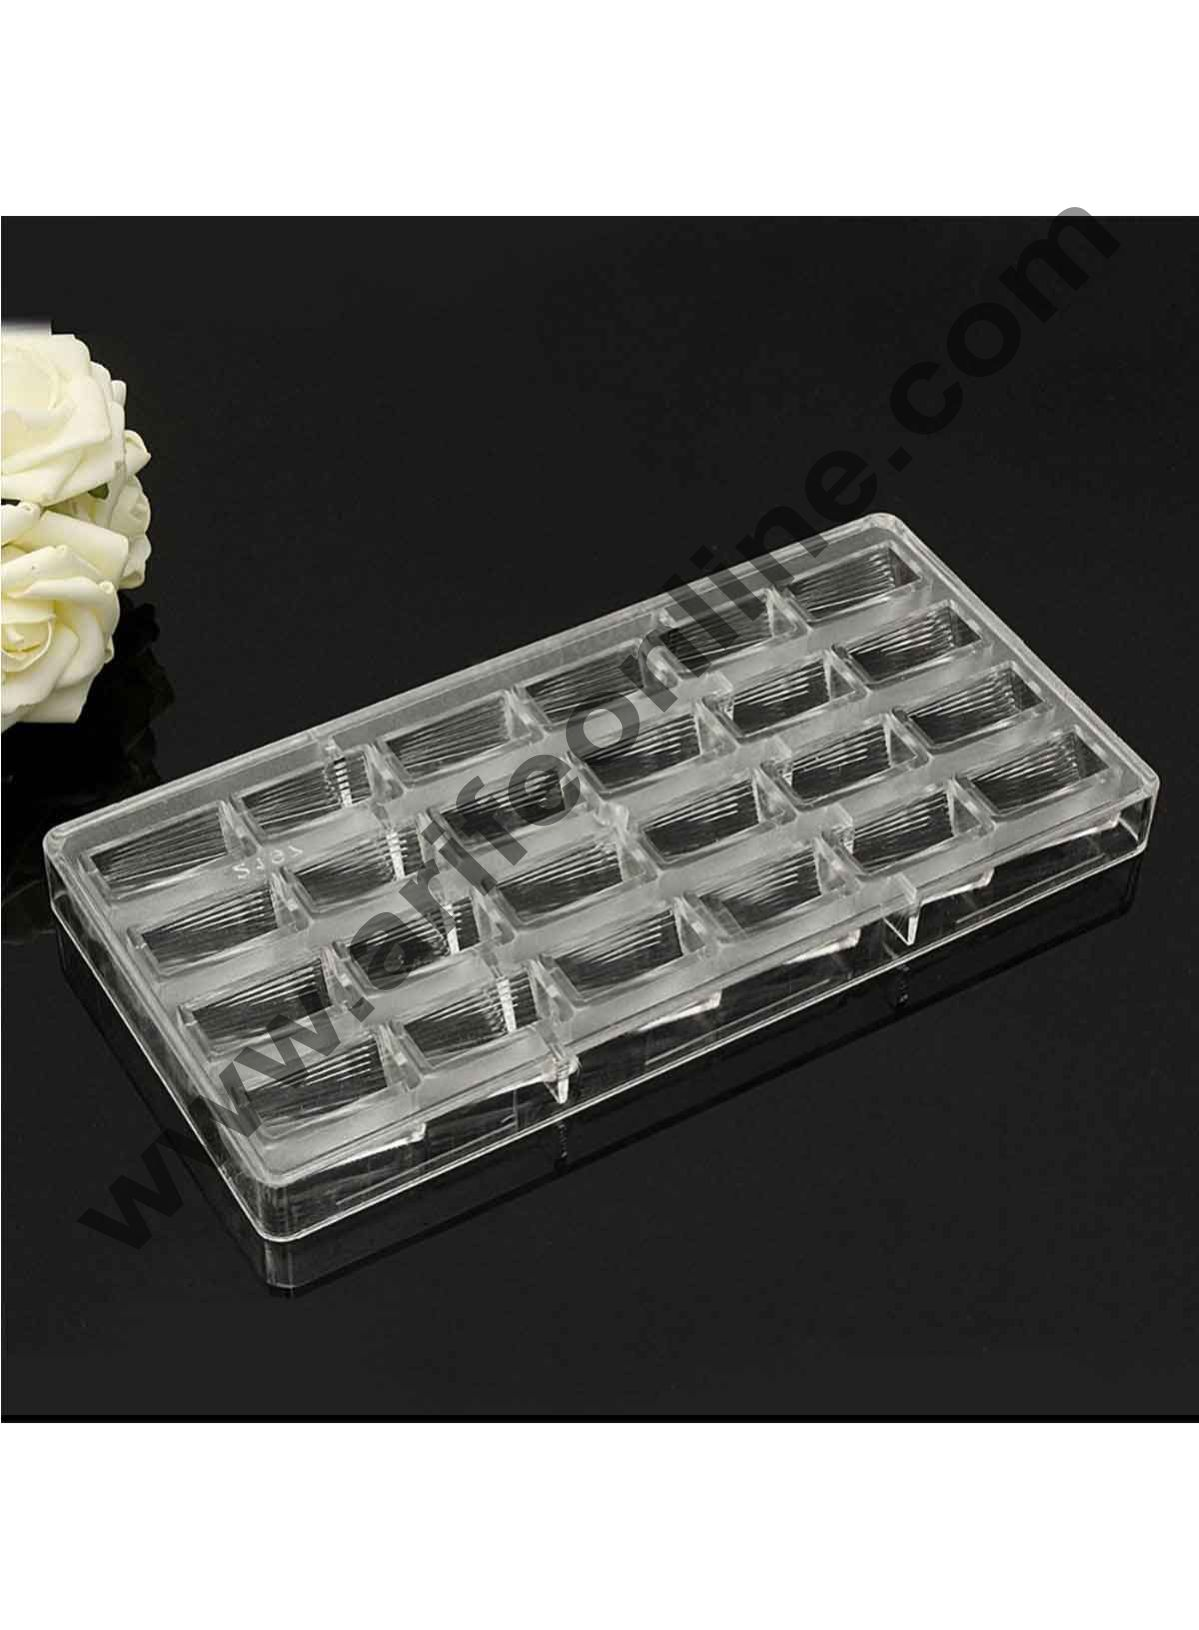 Cake Decor New 24 Cavity Special Polycarbonate Chocolate Mold Hard Plastic Chocolate Mold